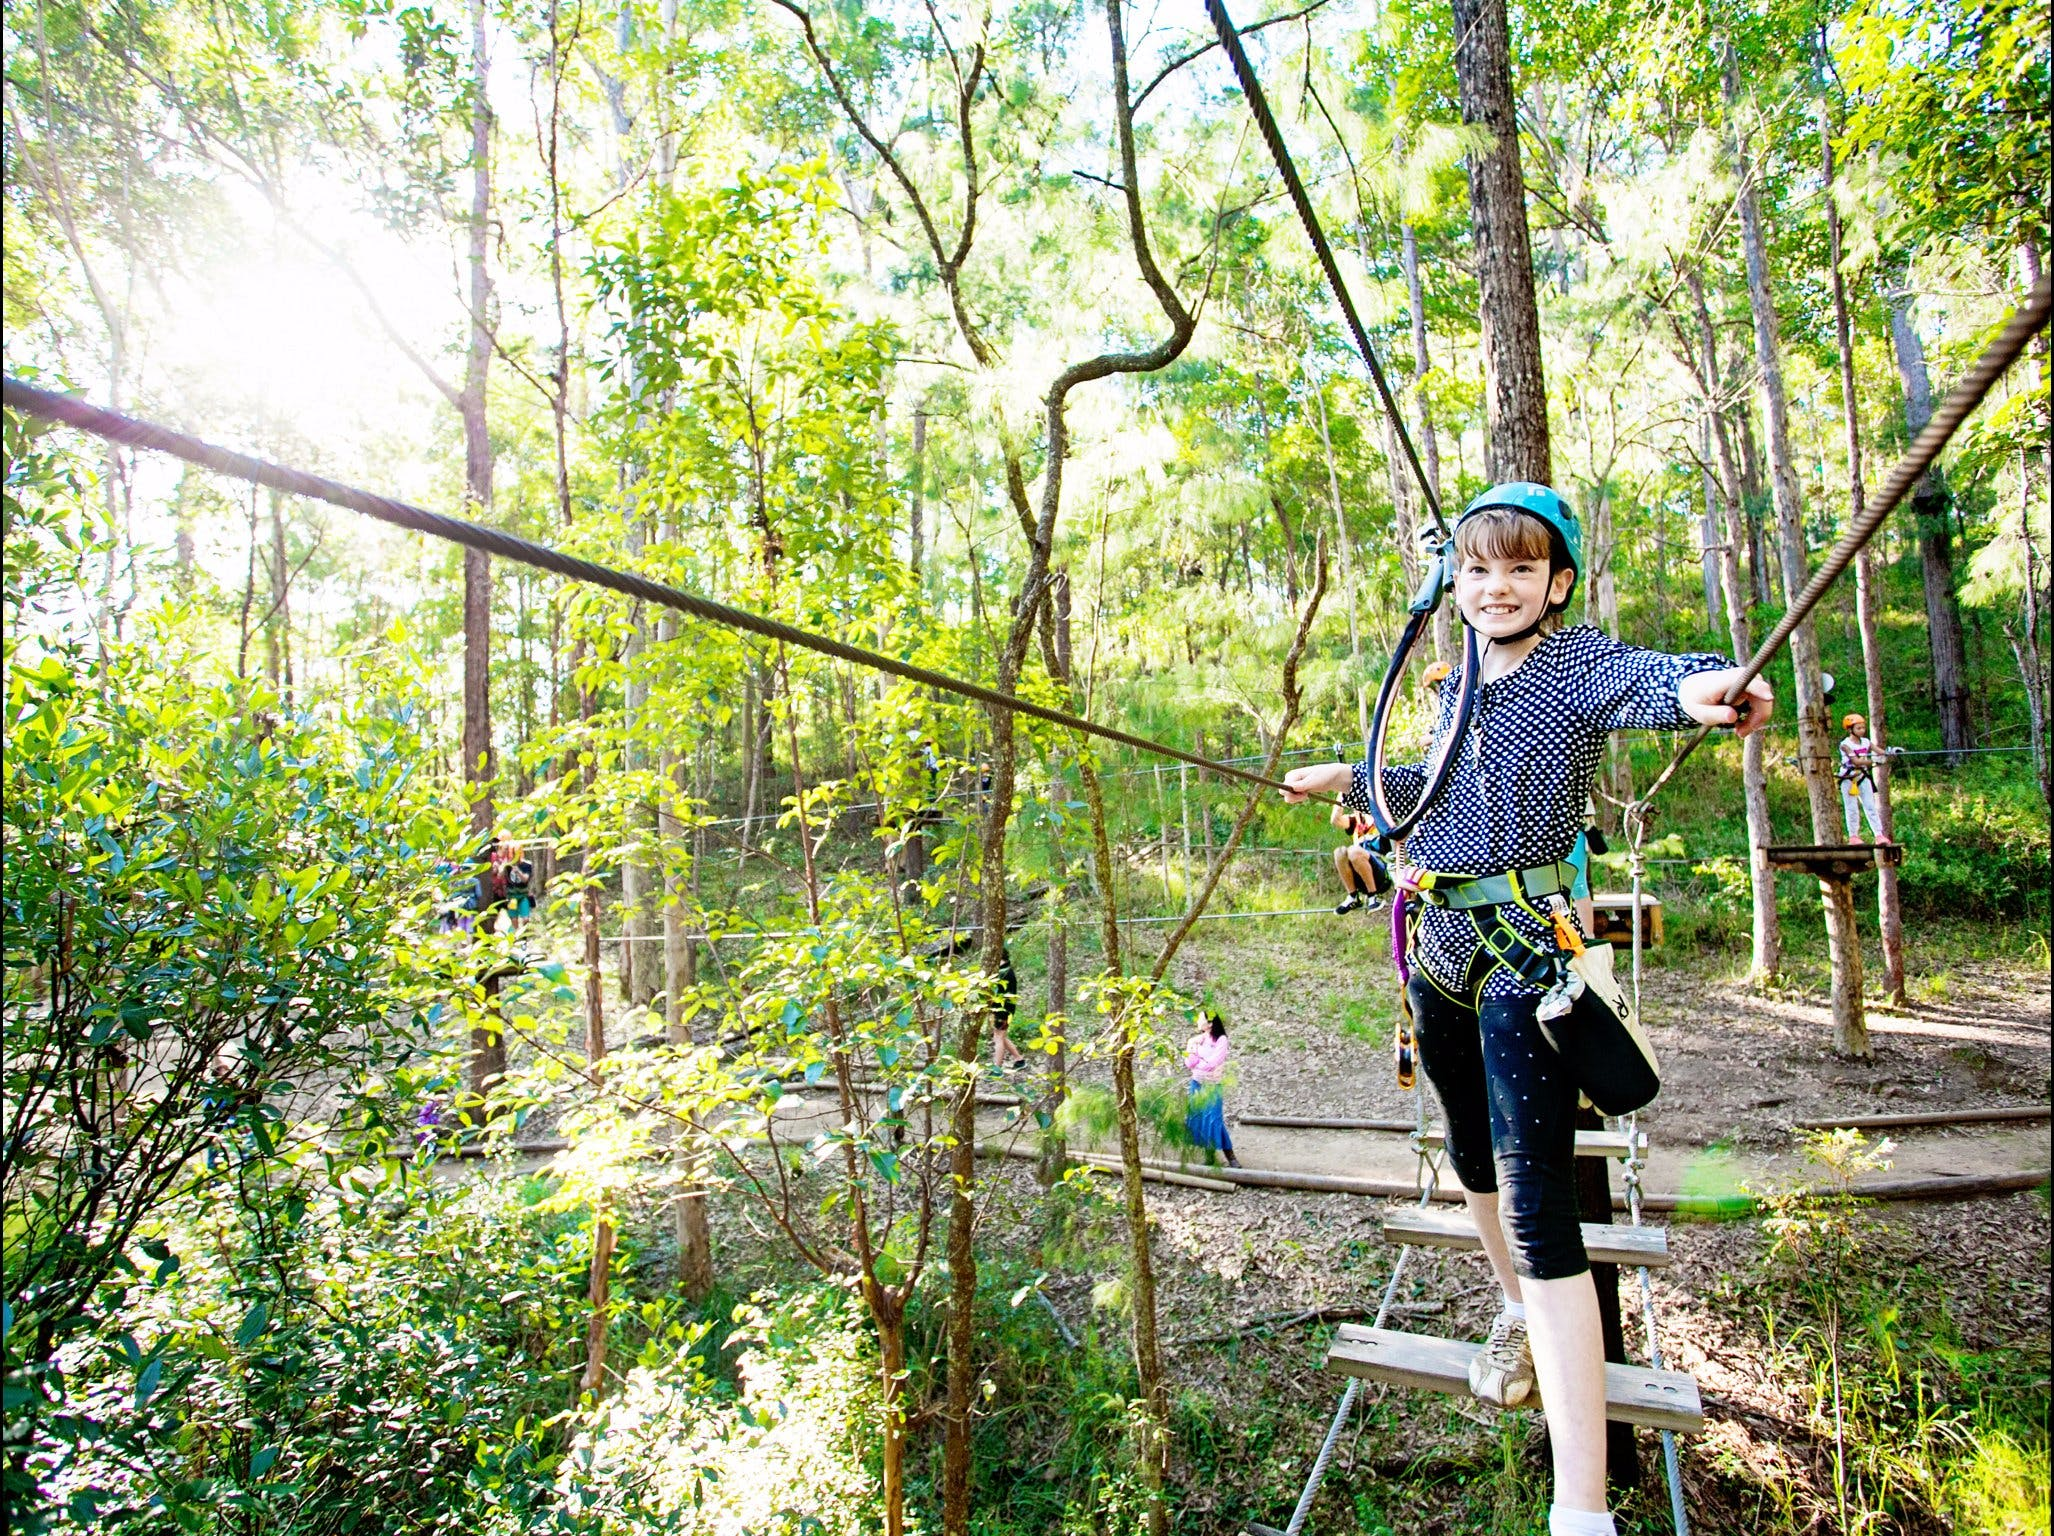 TreeTop Challenge Logo and Images